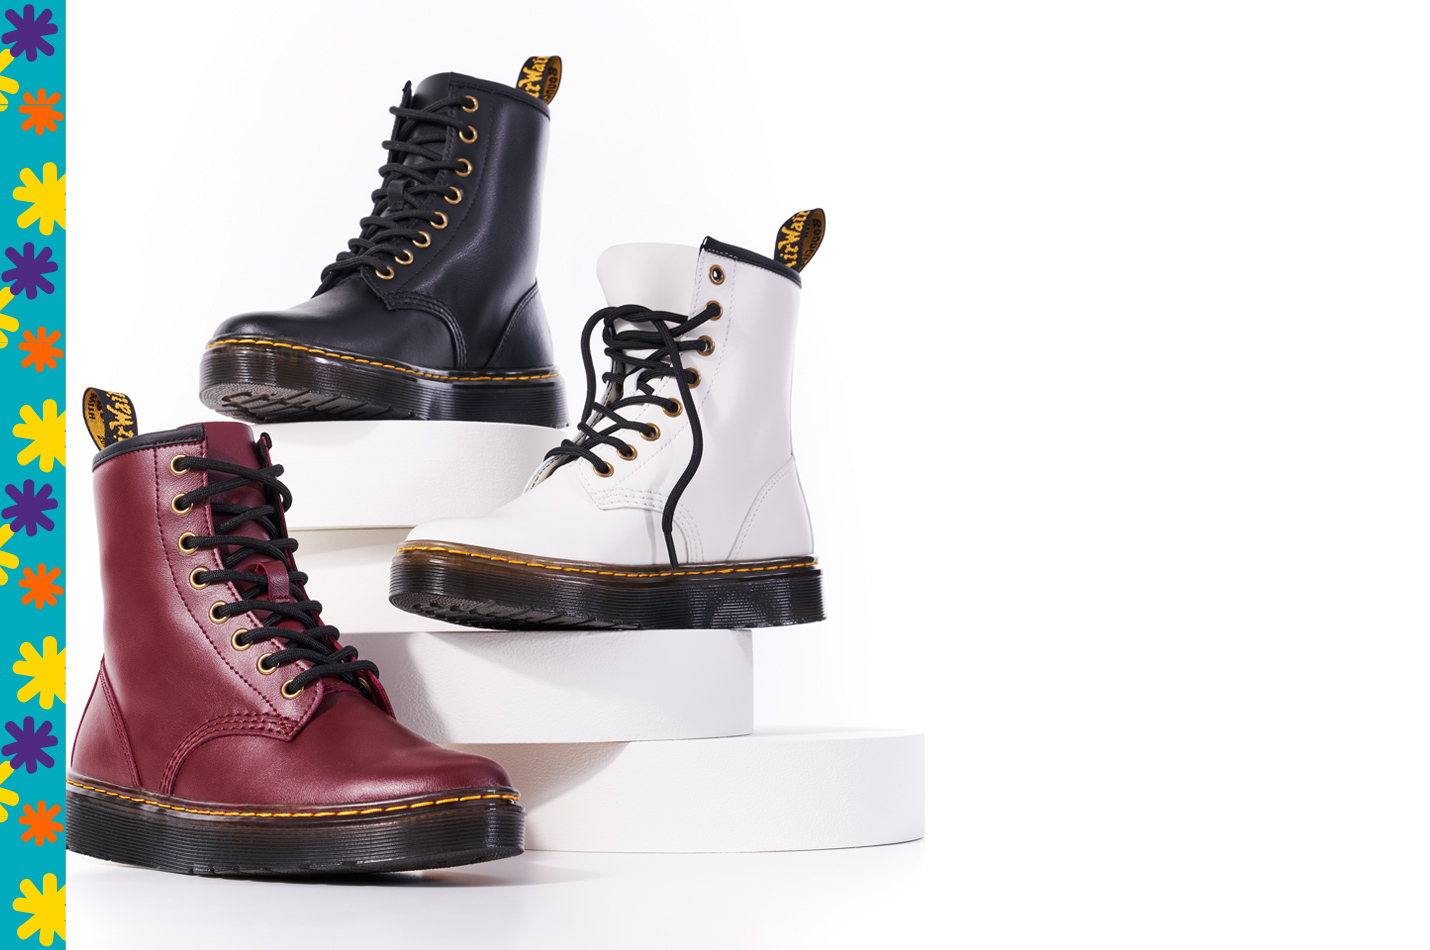 assorted Dr Matens boots